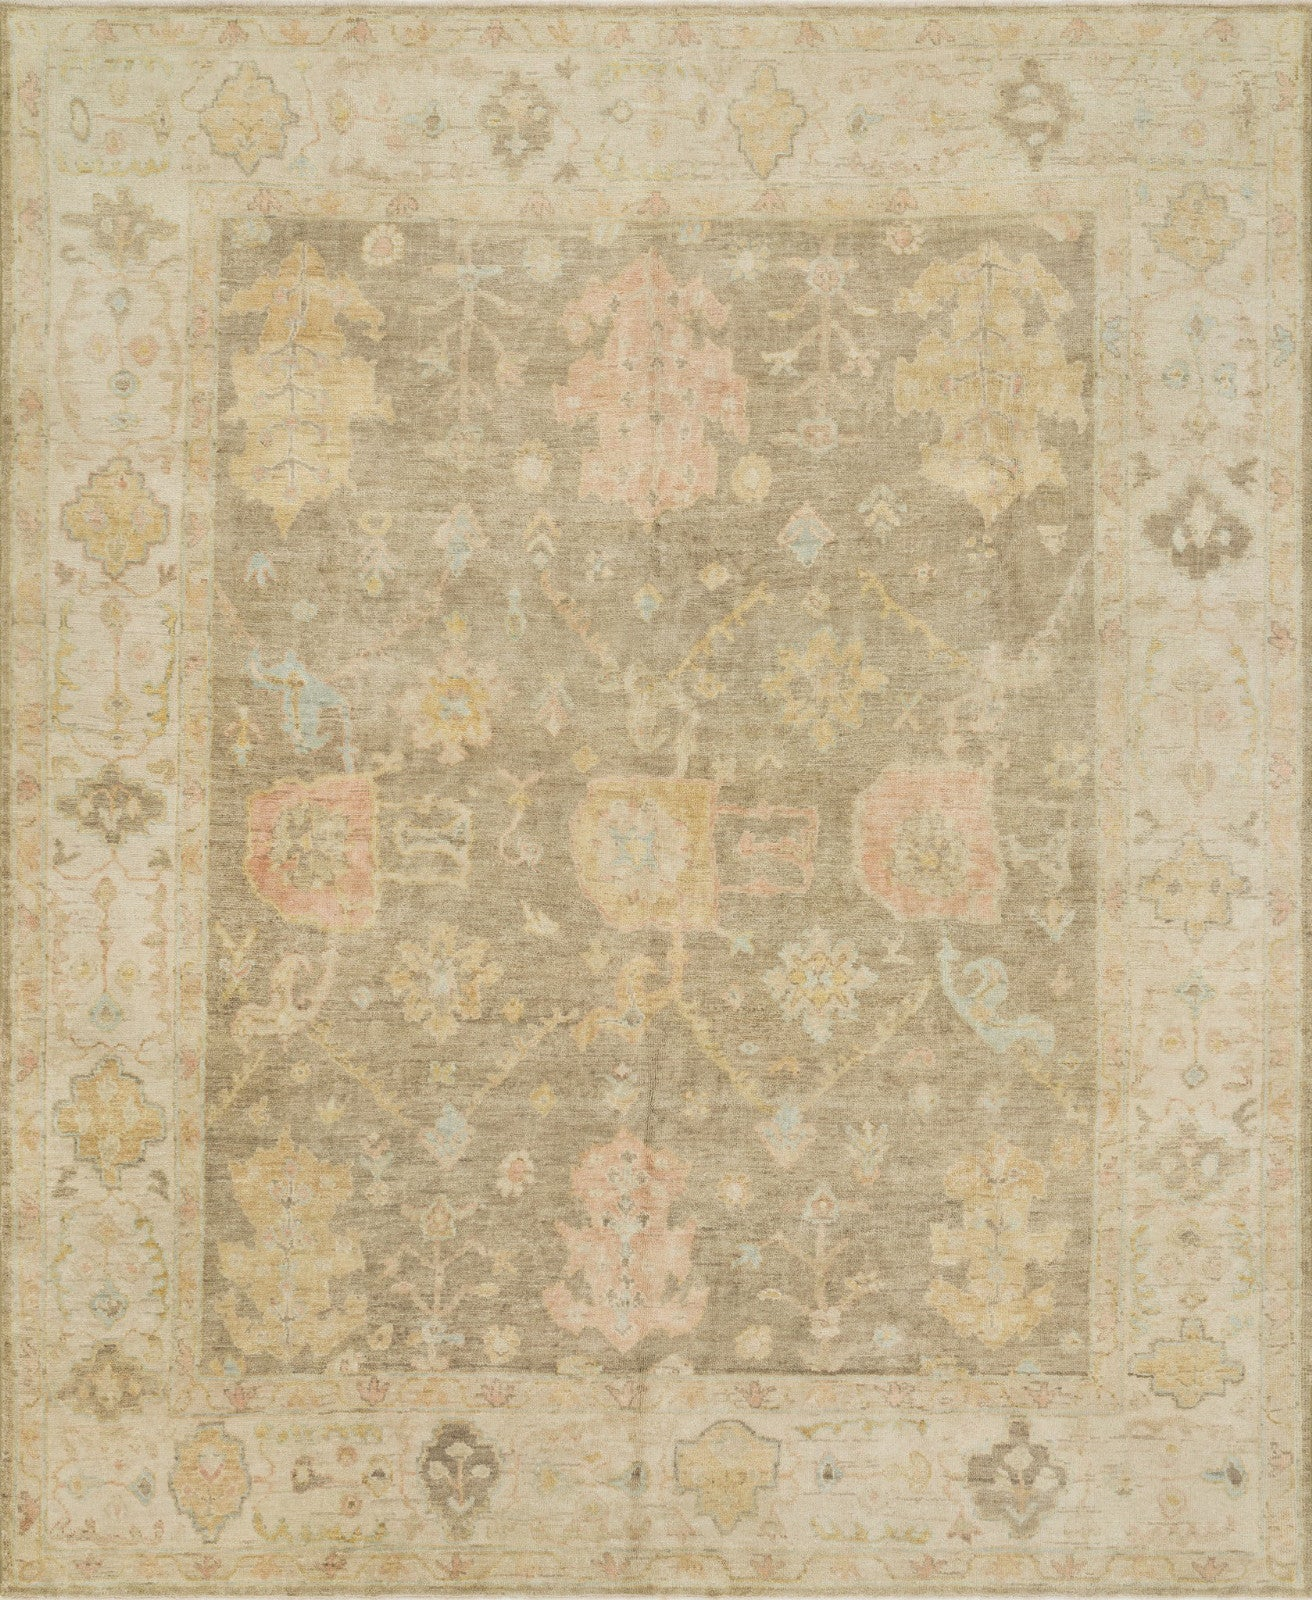 Loloi Vincent VC-02 Moss Gray/Stone Area Rug main image